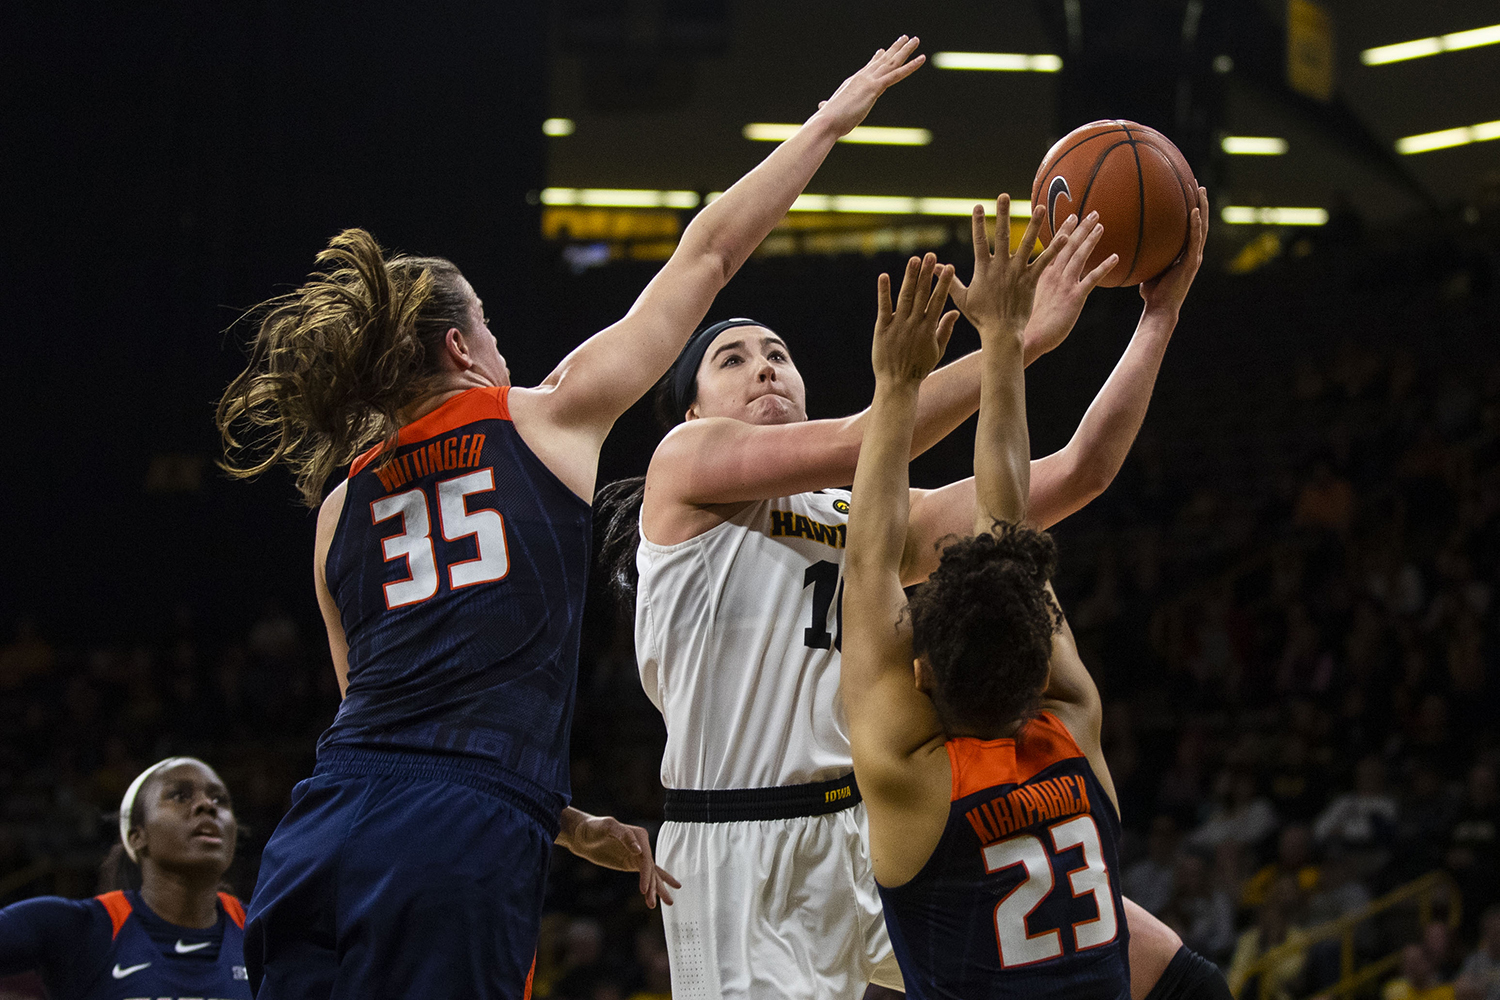 Iowa center Megan Gustafson looks to the basket during the Iowa/Illinois women's basketball game at Carver-Hawkeye Arena on Thursday, February 14, 2019. The Hawkeyes defeated the Fighting Illini, 88-66.